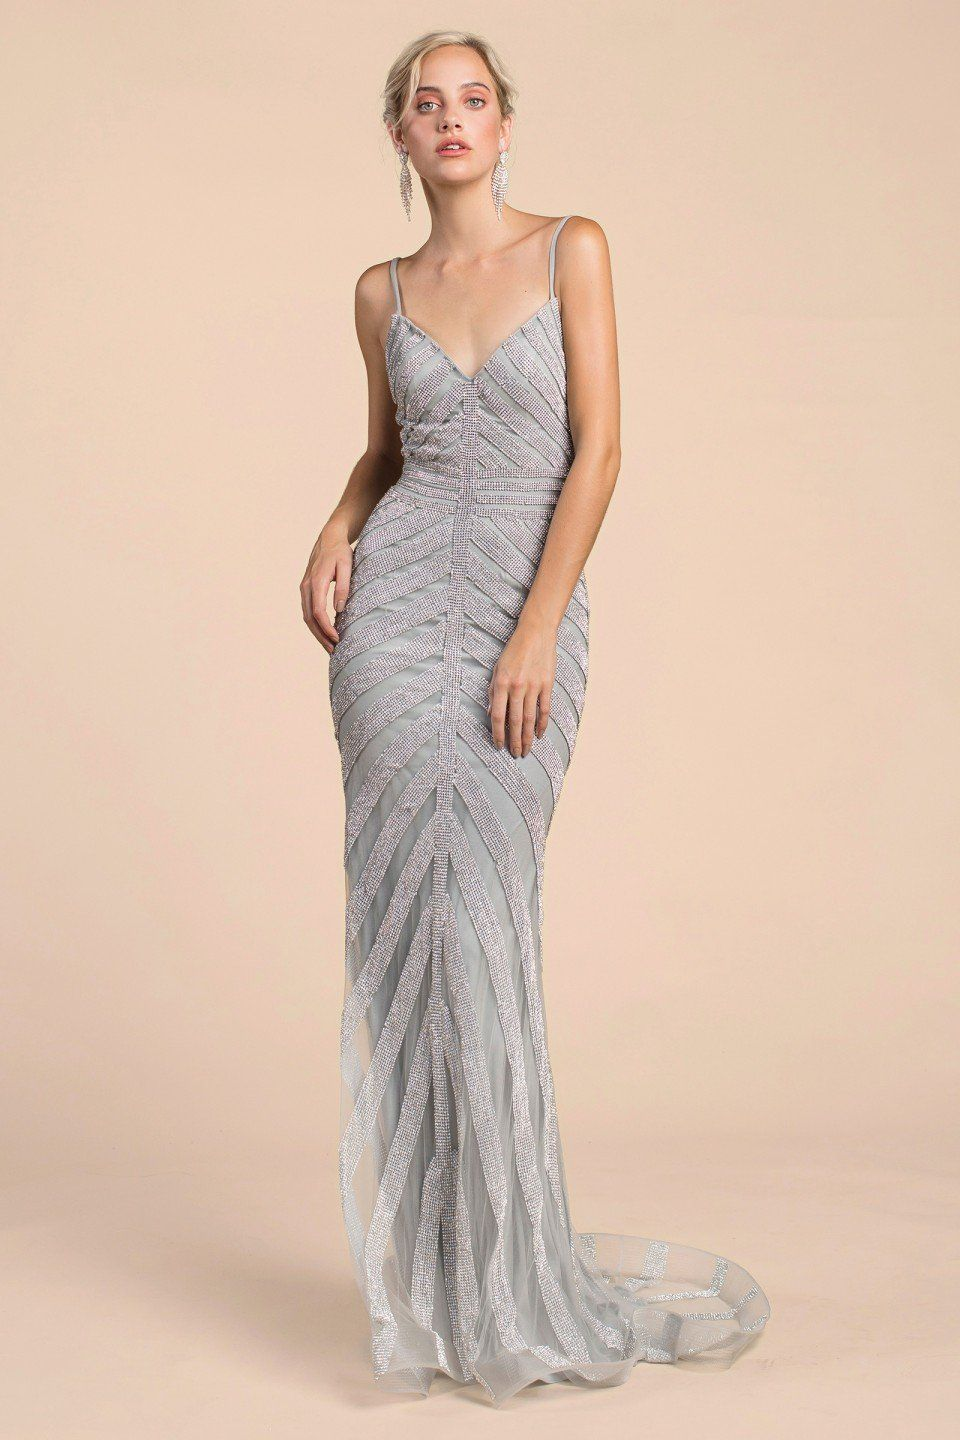 aec29d4c1f A0253 in 2019 | Products | Silver evening gowns, Silver bridesmaid ...